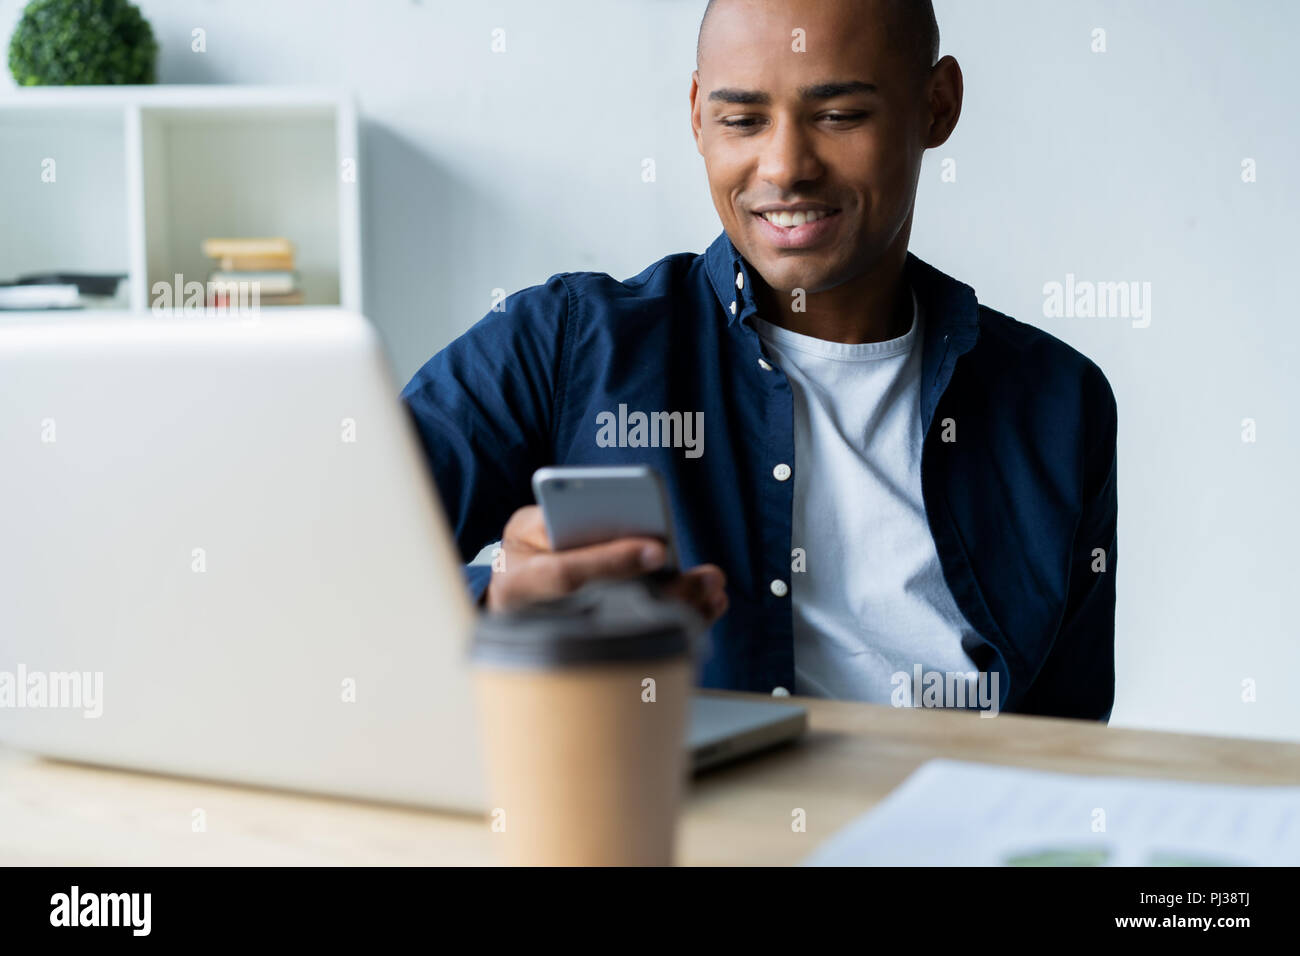 Happy african american businessman using a mobile phone in an office. Stock Photo